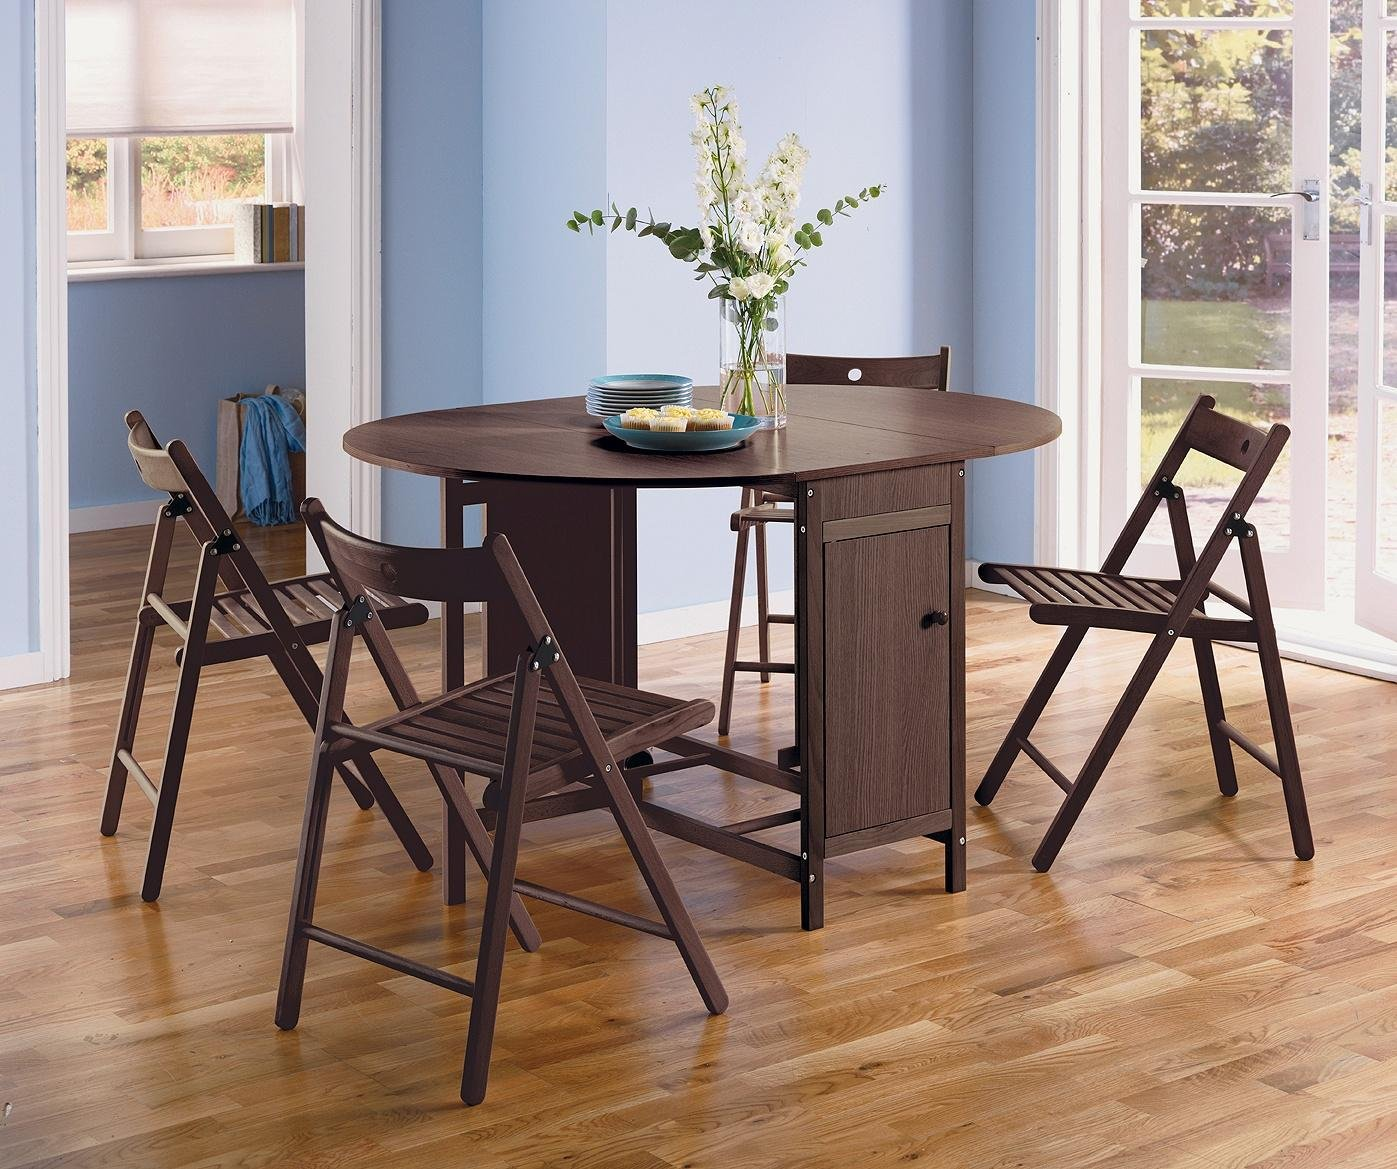 Argos Home Butterfly Ext Oval Table Amp 4 Chairs Reviews